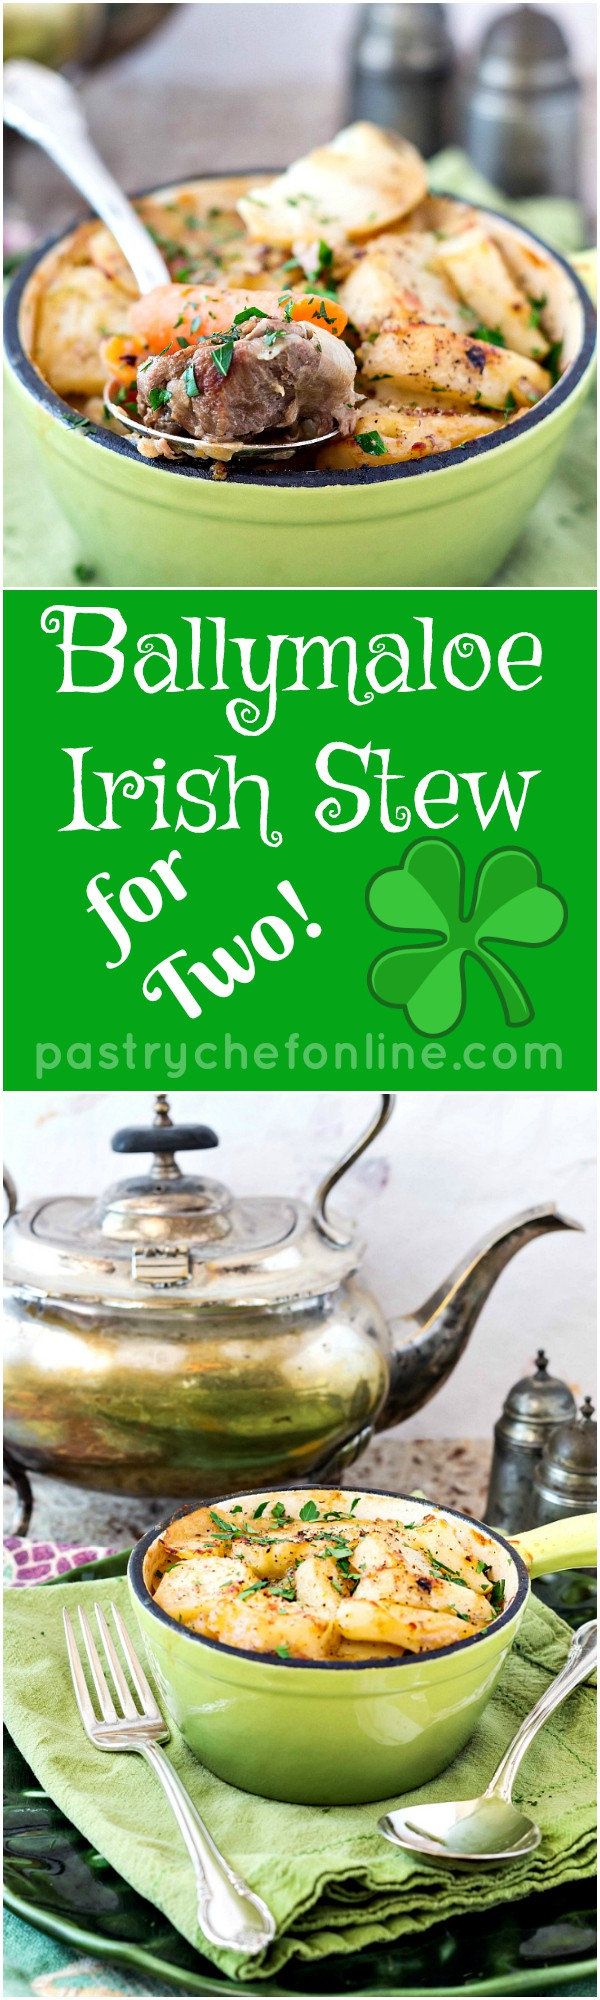 Ballymaloe Irish Stew for Two (or Four) is made of simple ingredients flavored simply. The result is a rich, satisfying stew perfect for your St. Patrick's Day dinner or any time you want an easy stew recipe.   pastrychefonline.com